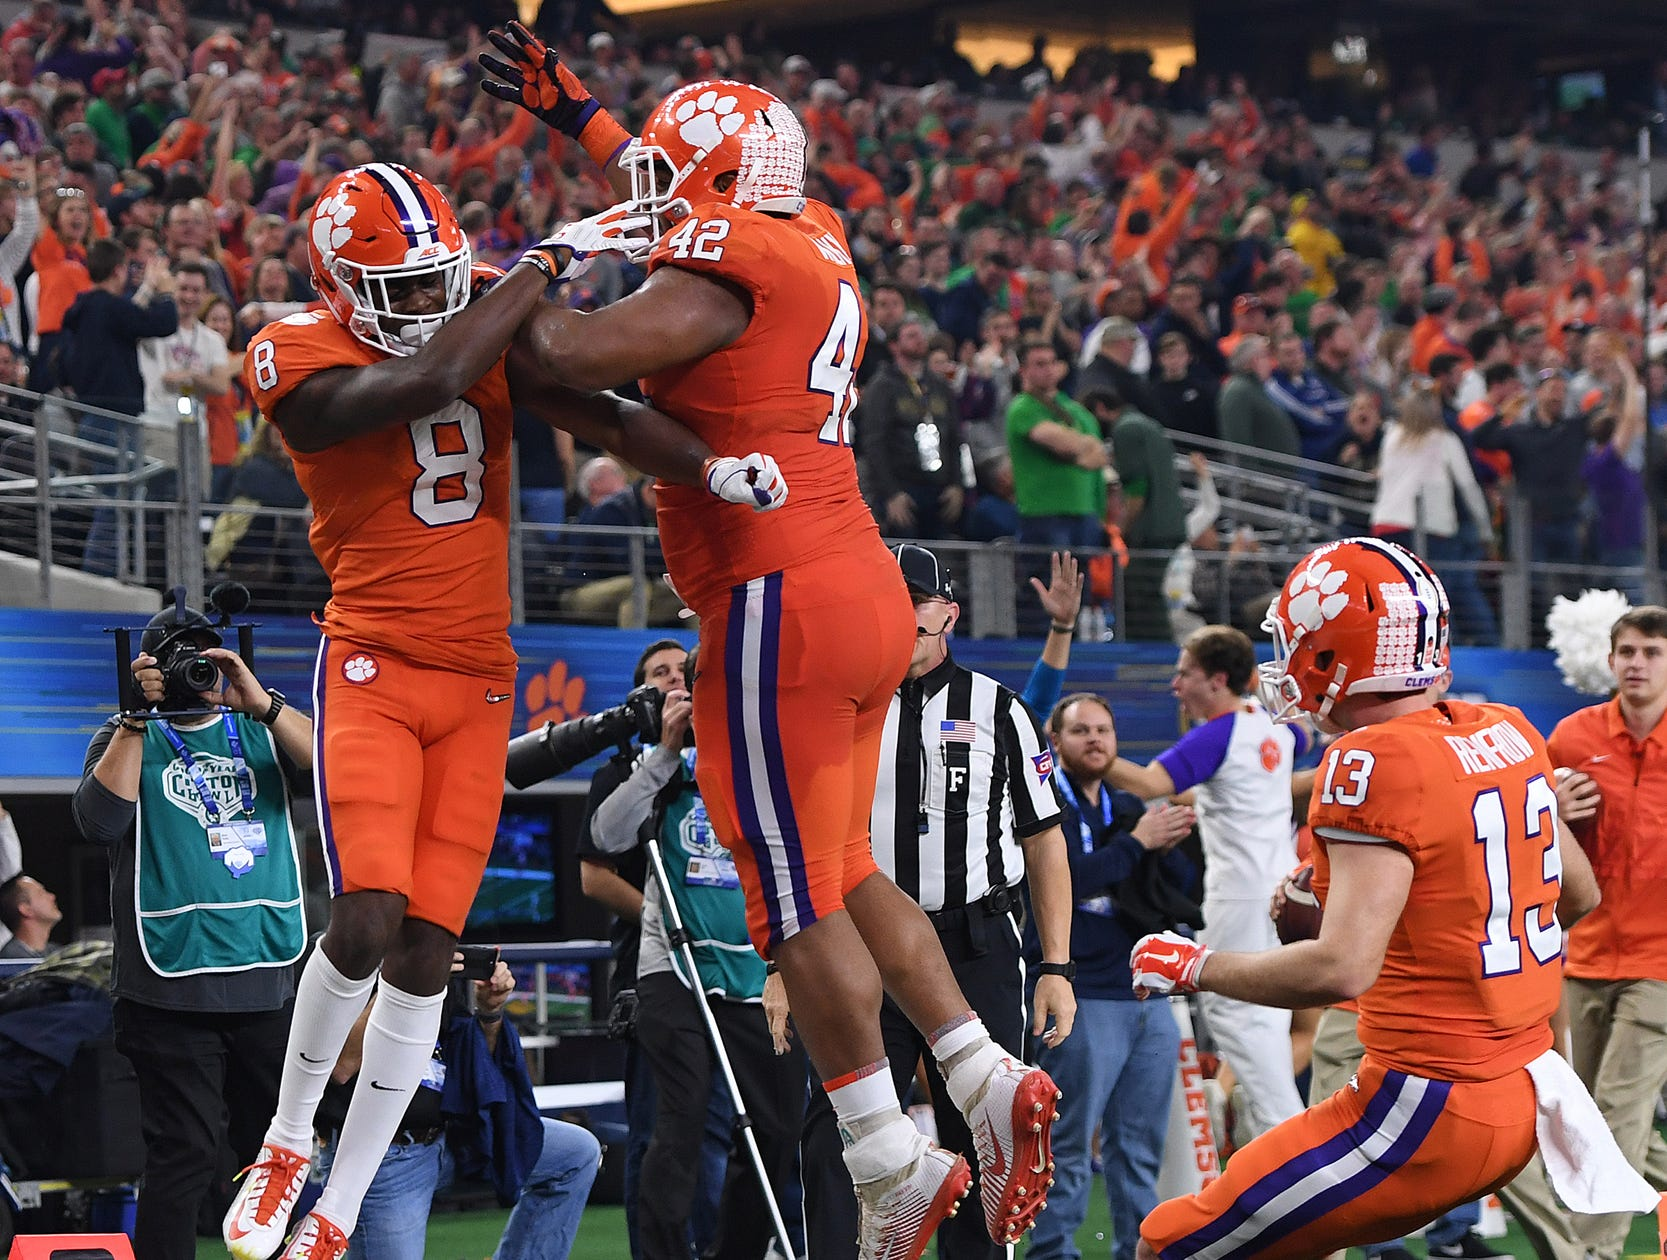 Clemson defensive lineman Christian Wilkins (42) celebrates with wide receiver Justyn Ross (8) after Ross caught a 42 yard TD against Notre Dame during the 2nd quarter of the Goodyear Cotton Bowl at AT&T stadium in Arlington, TX Saturday, December 29, 2018.